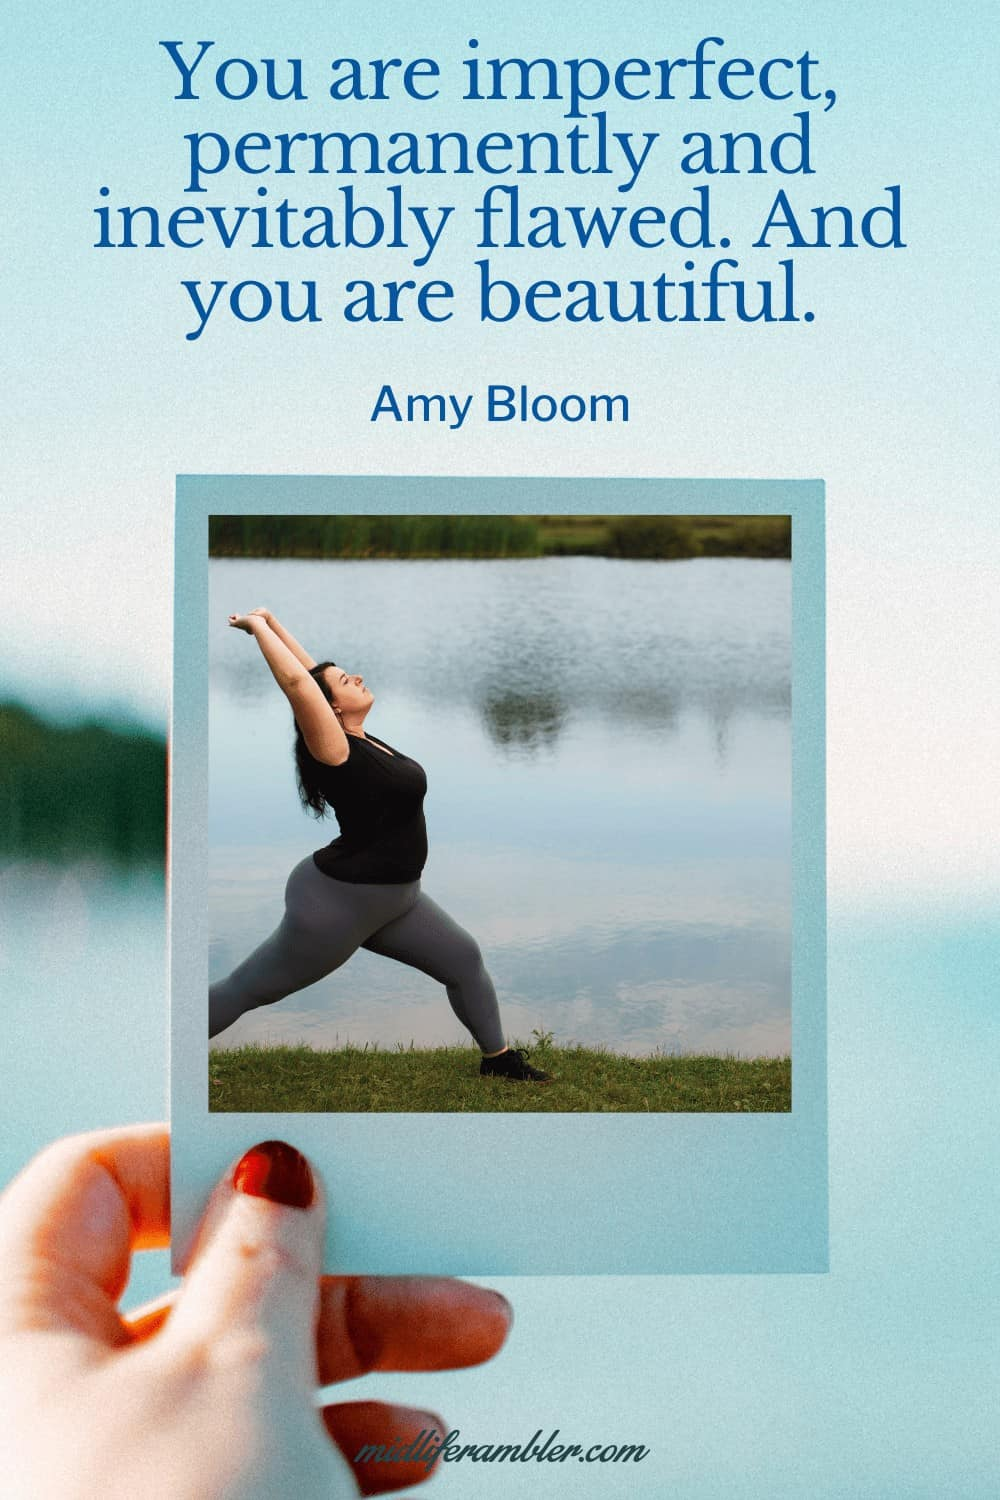 50 Self-Compassion Quotes and Affirmations to Help You Learn to Love and Accept Yourself - You are imperfect, permanently and inevitably flawed. And you are beautiful. – Amy Bloom